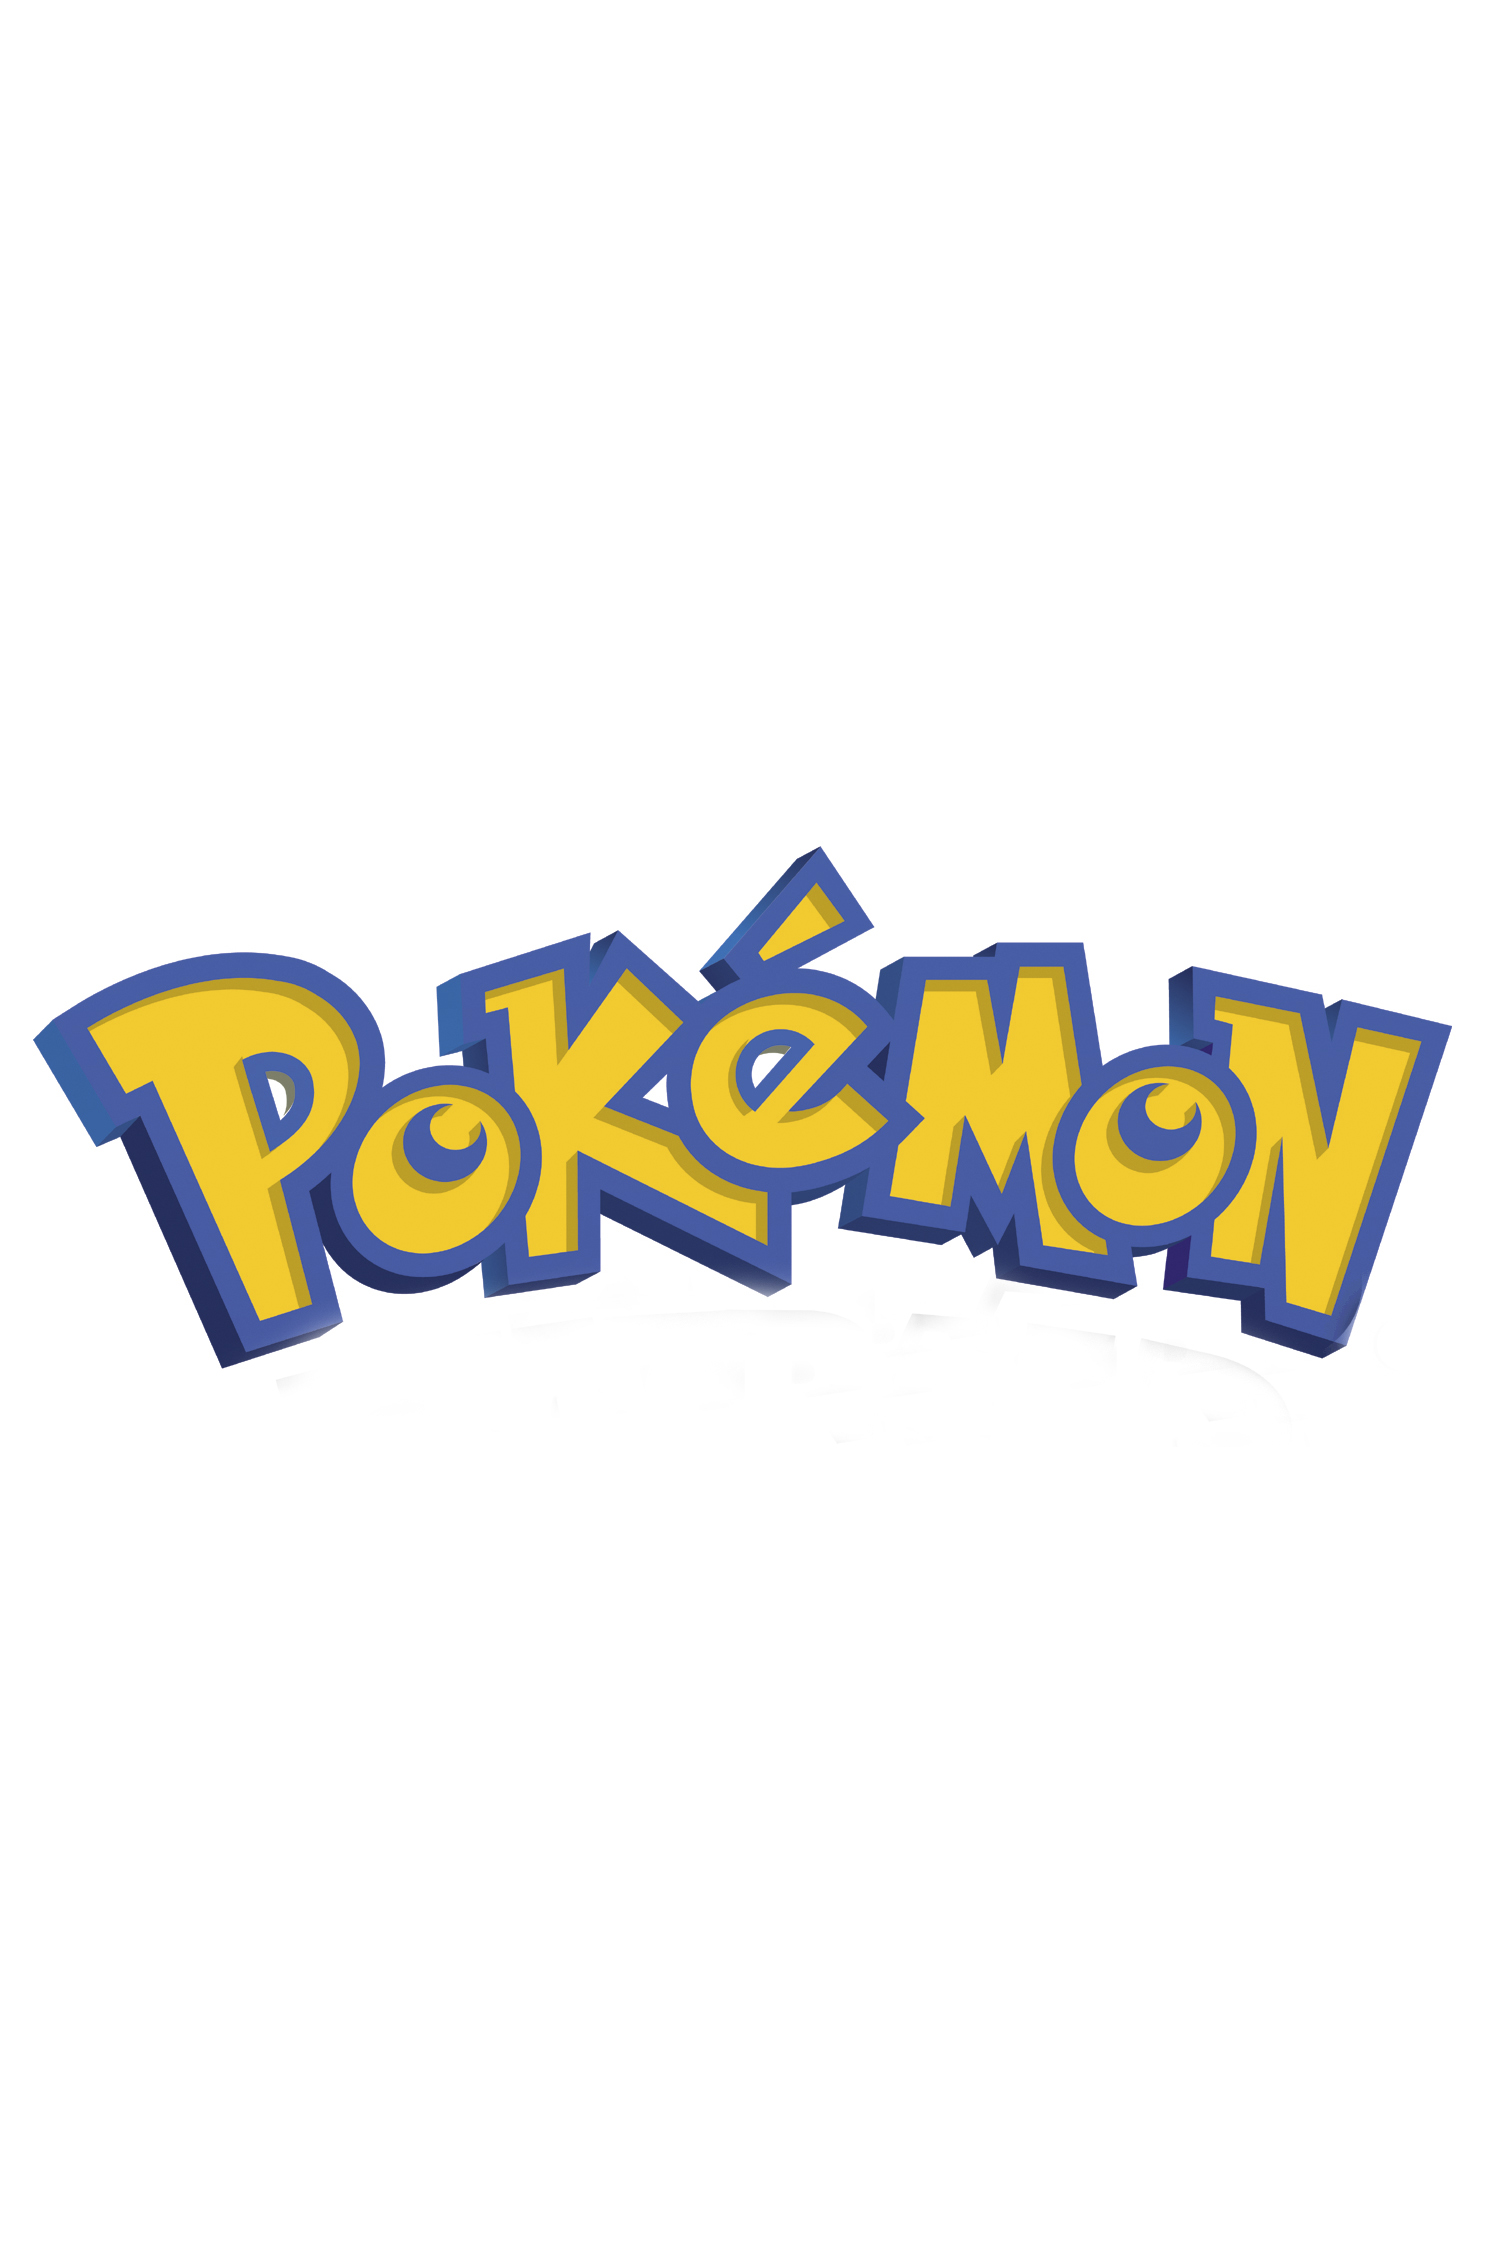 A Pokemon Switch game could kick off with the 8th generation